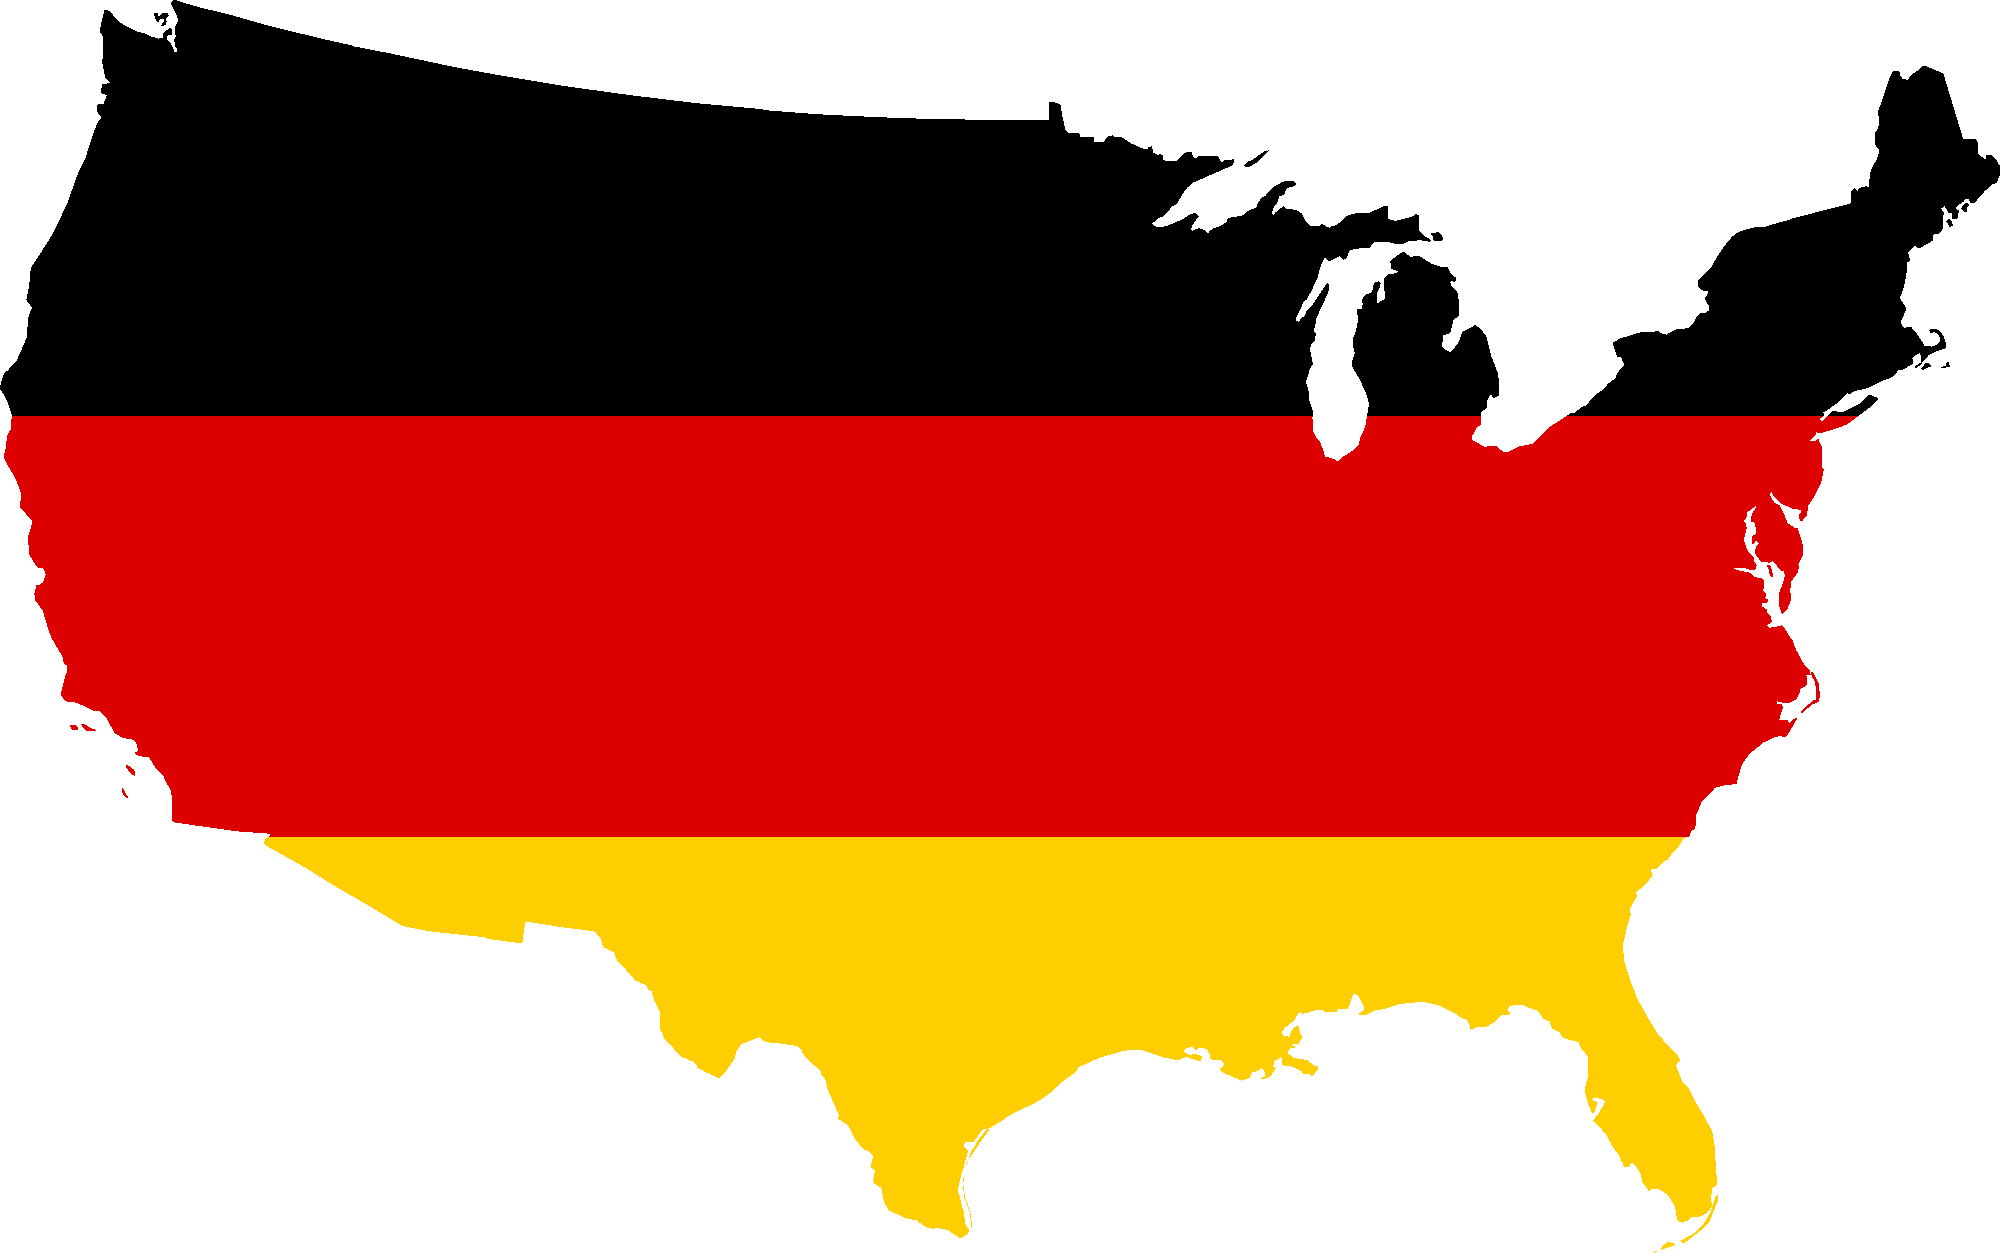 Germany and its Flag on a Map of USA 233.96 Kb